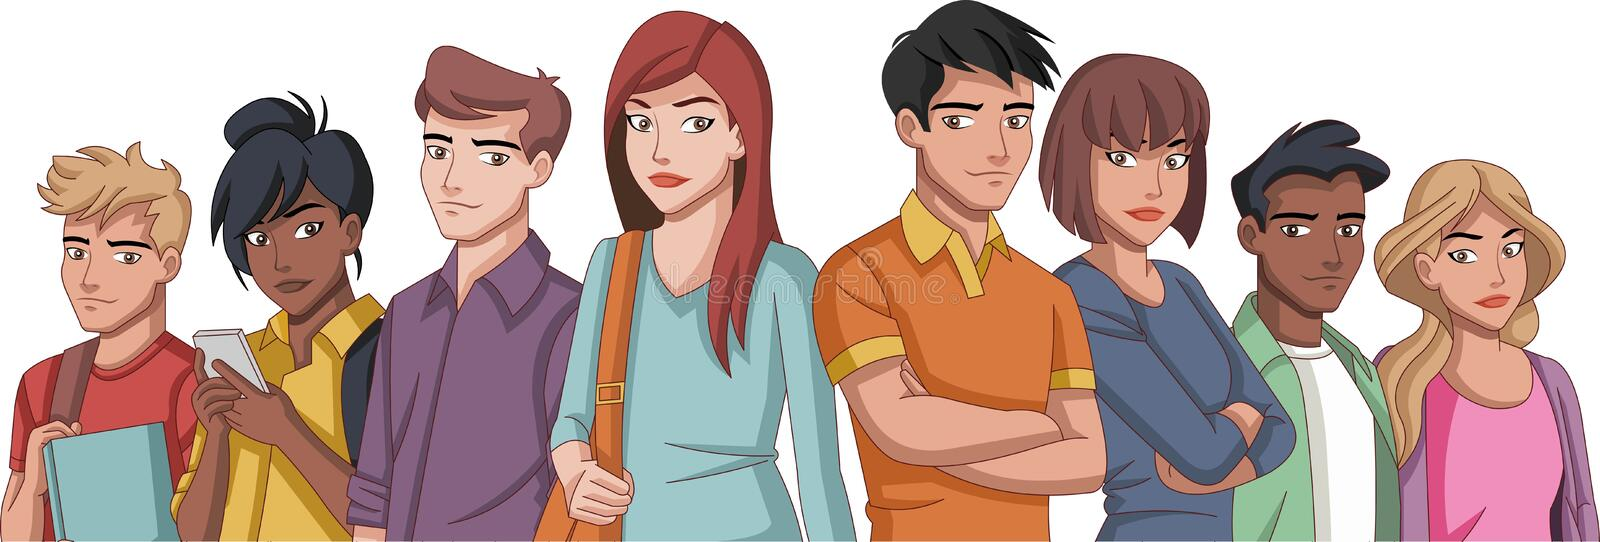 Group of cartoon young people royalty free illustration